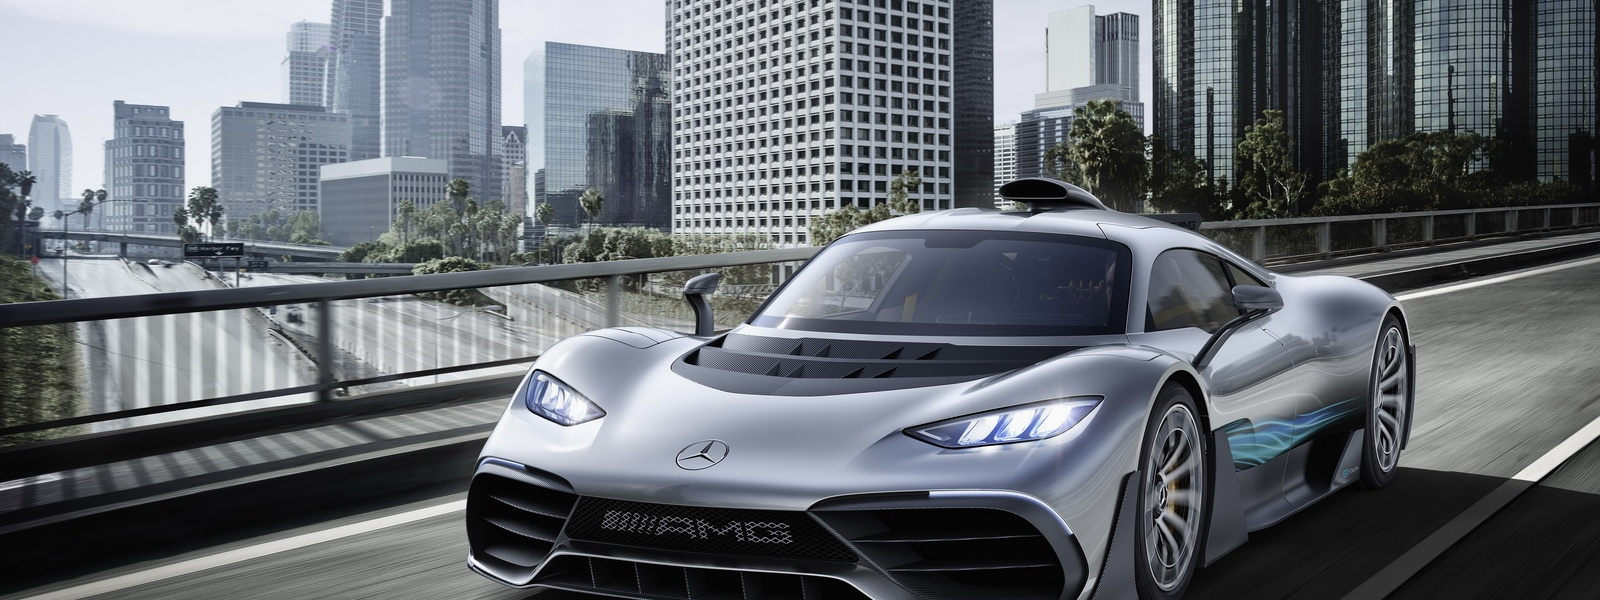 mercedes-amg-project-one-1.jpg